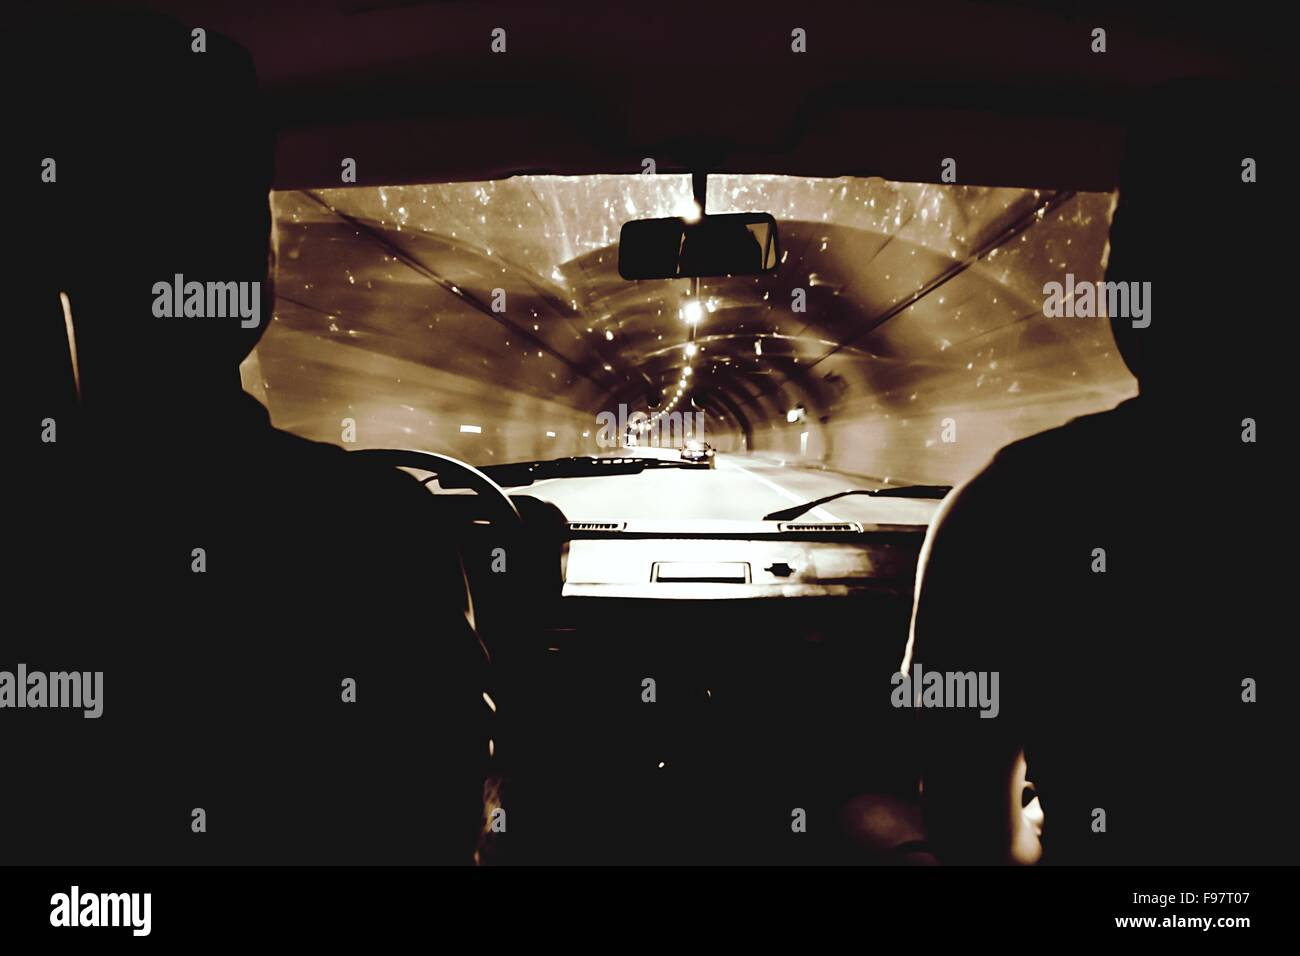 Silhouette People Driving Car In Illuminated Tunnel Stock Photo